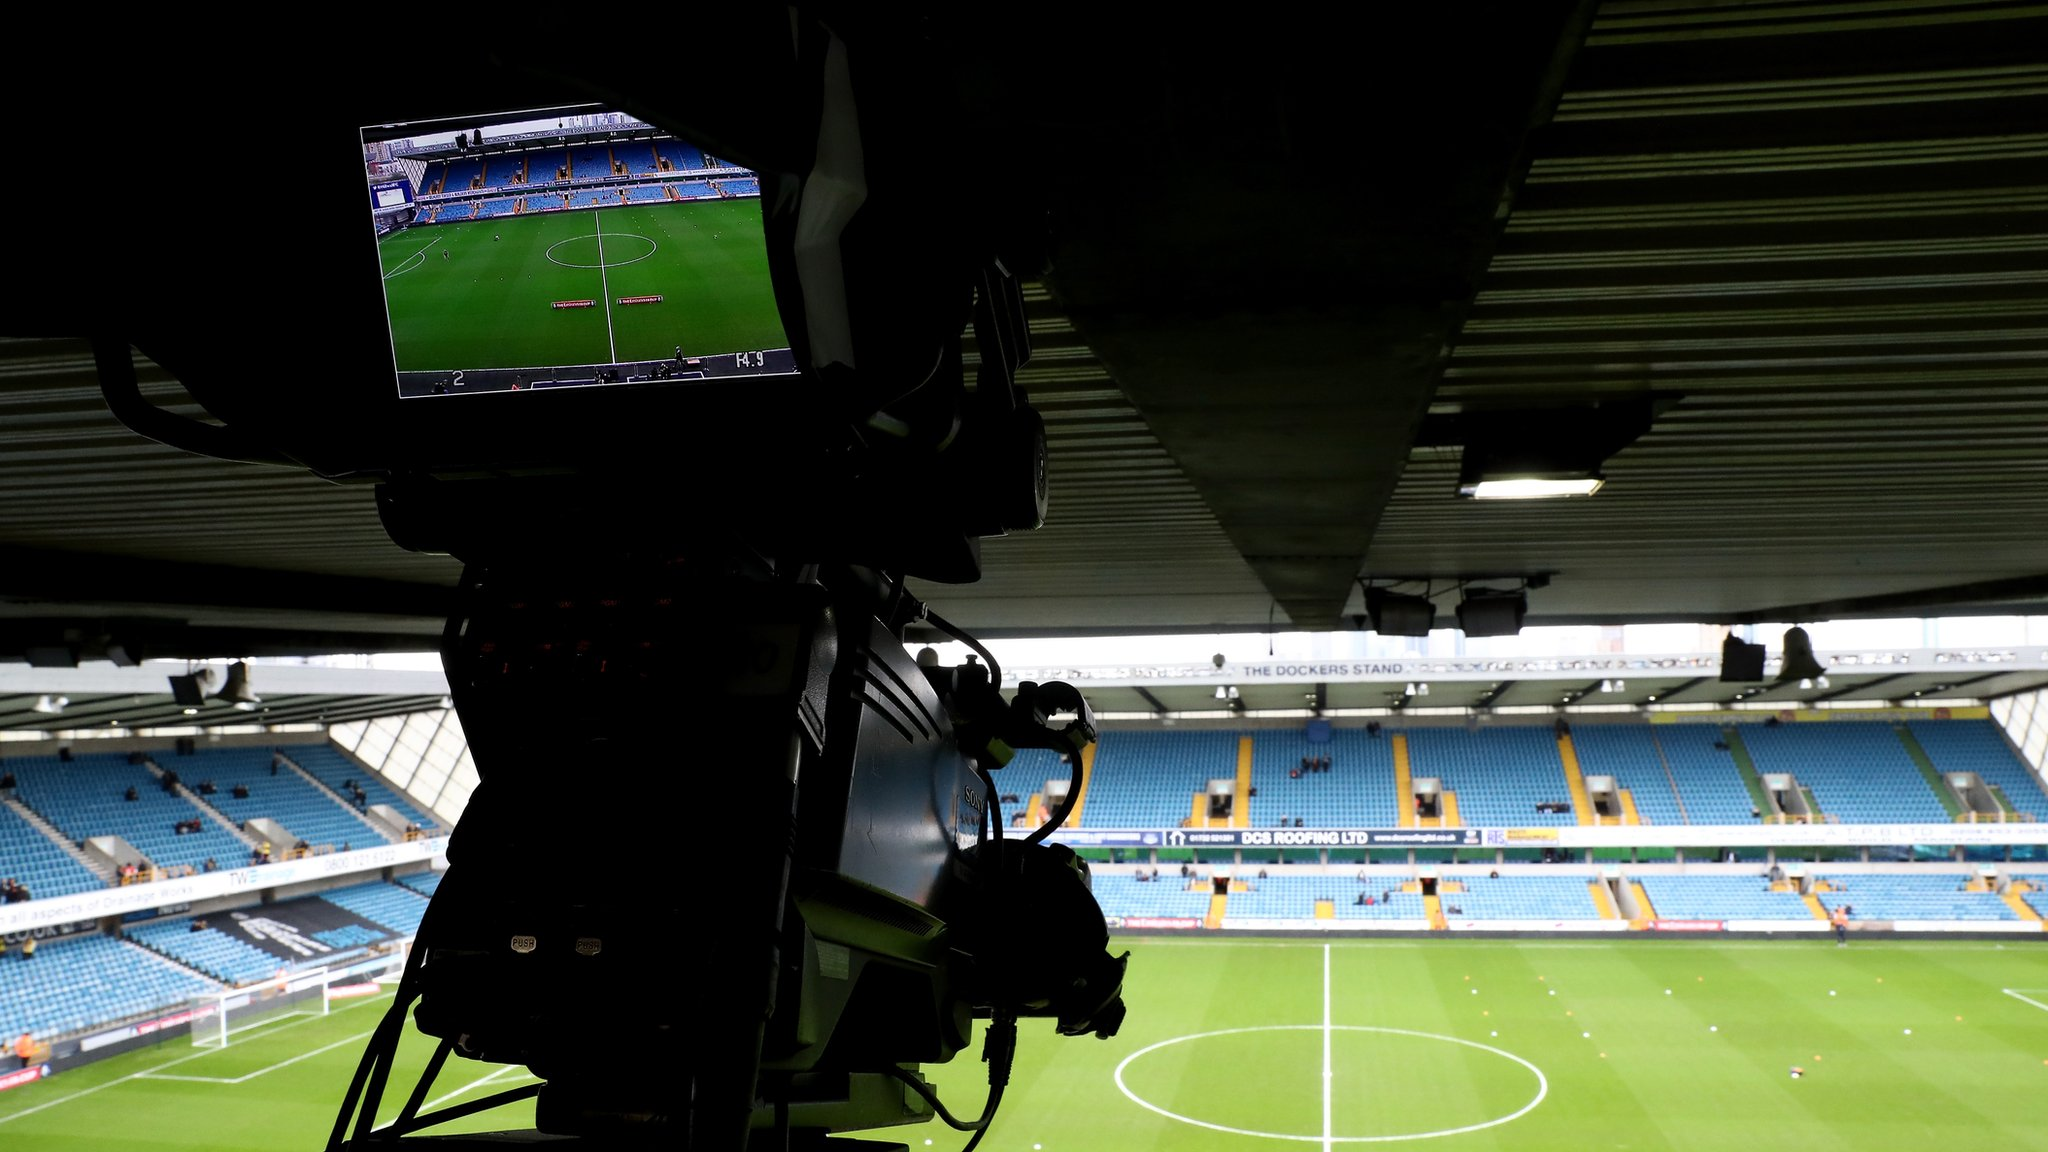 'Clubs could play in empty stadiums'